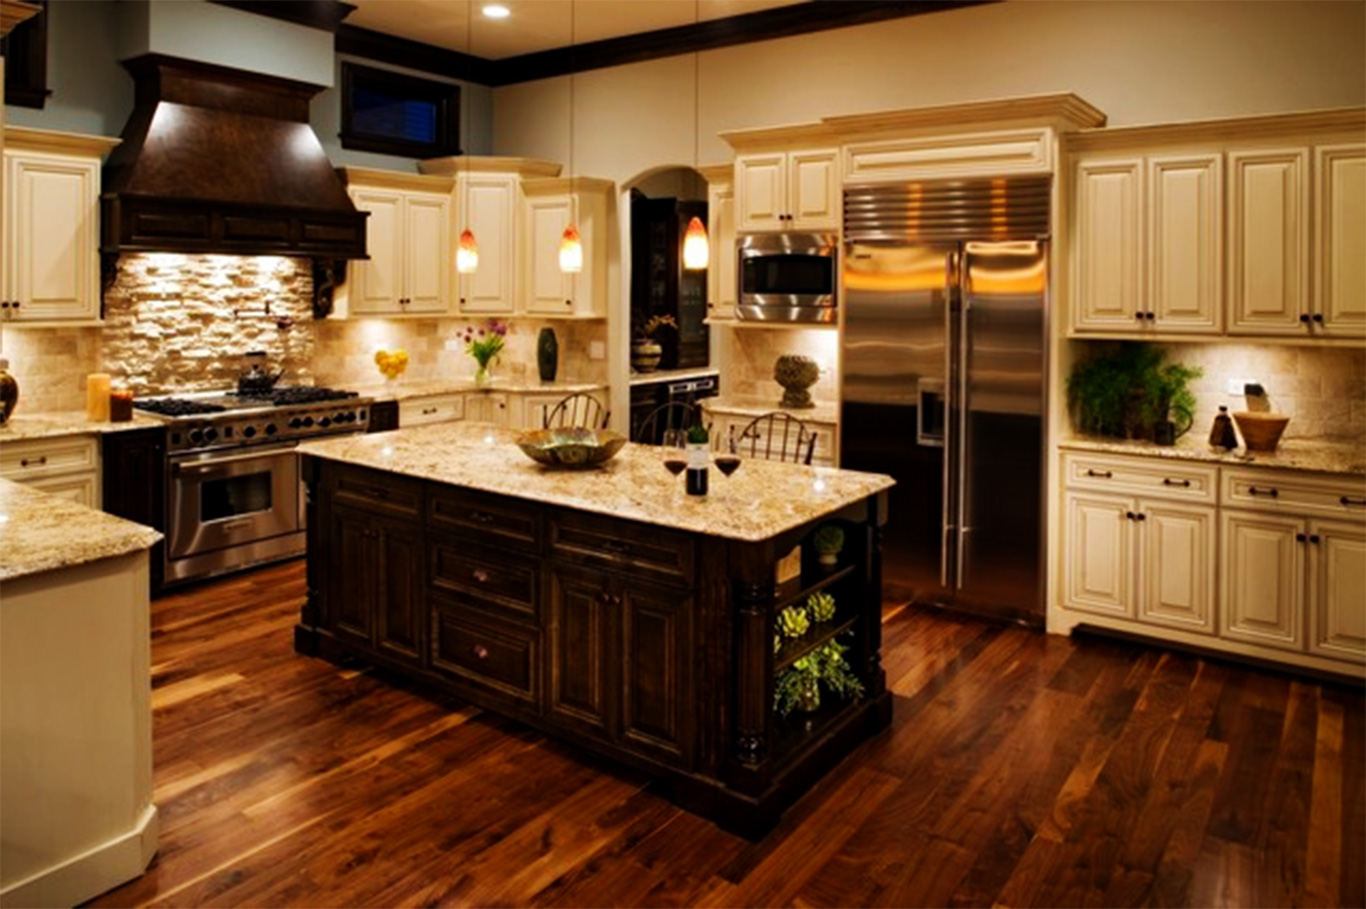 11 awesome type of kitchen design ideas - Designs of kitchen ...